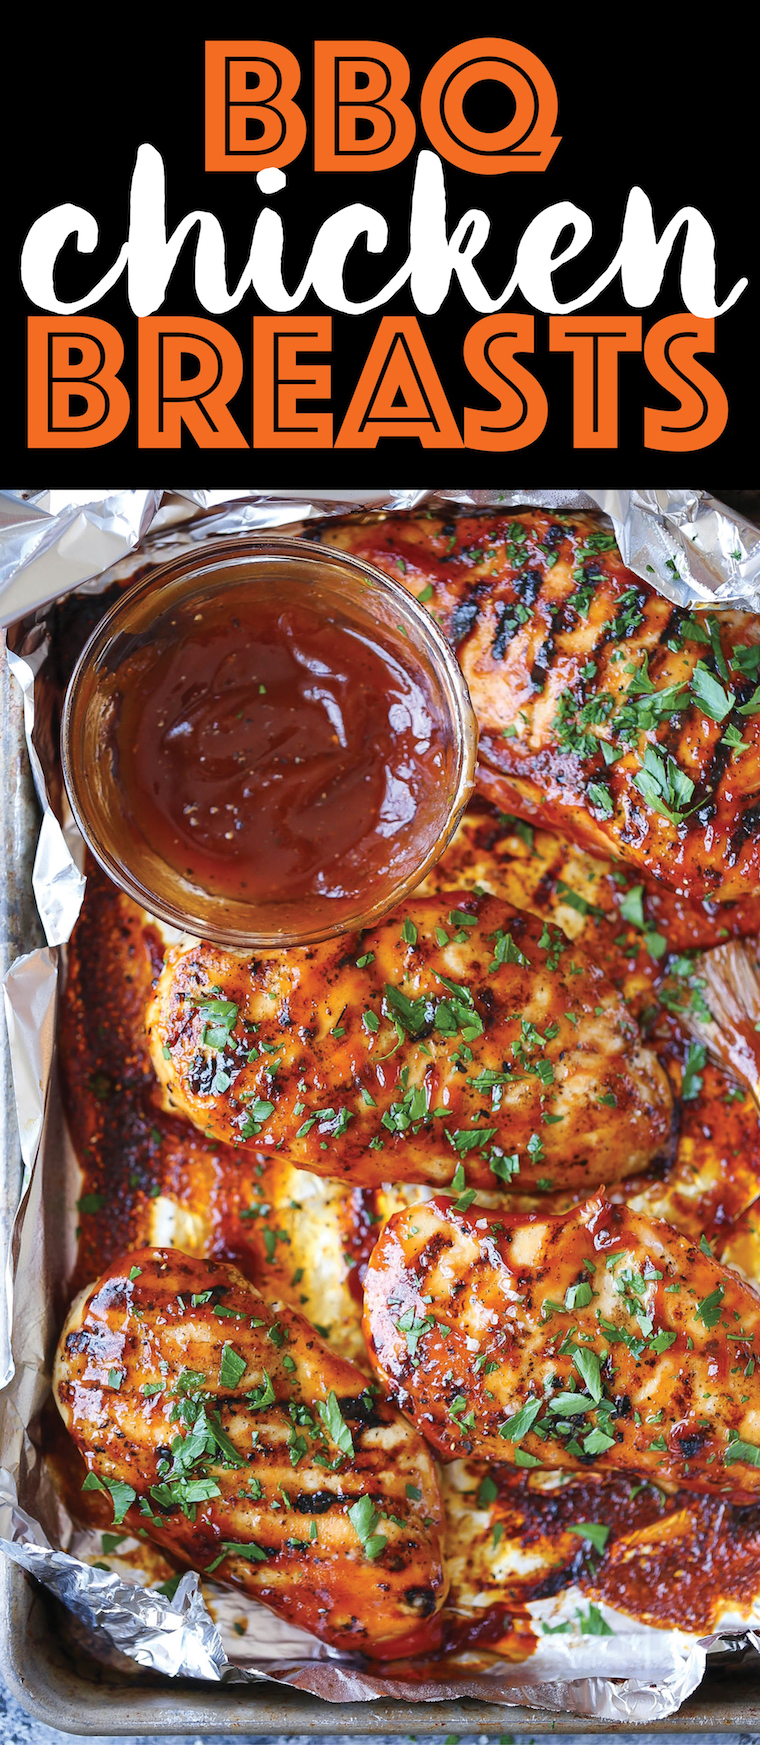 Bbq Chicken Breasts Damn Delicious